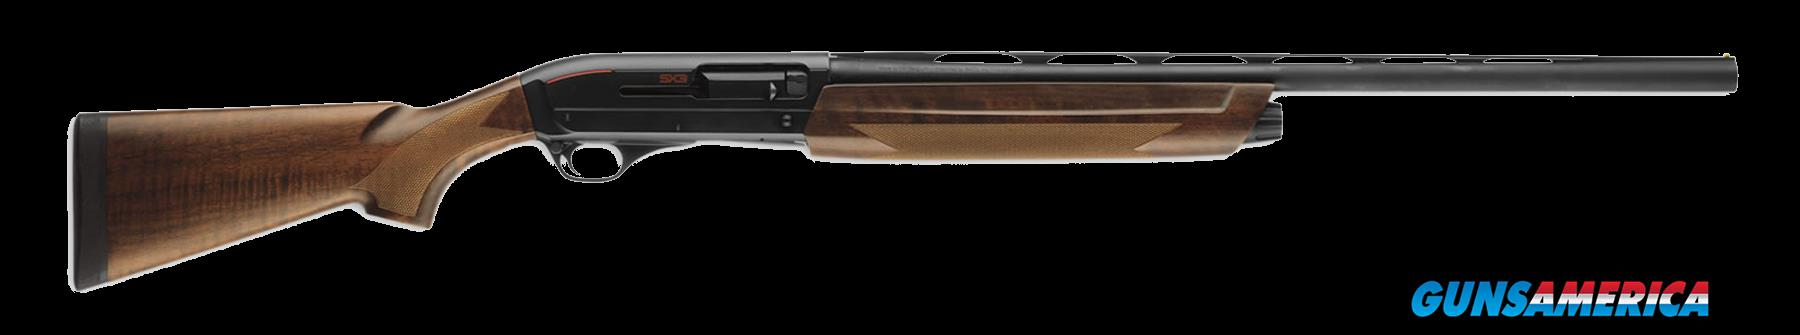 "Winchester Guns 512271391 SXP Field Pump 12 Gauge 26"" 3"" Grade I Walnut Stk Black Aluminum Alloy  Guns > Shotguns > Winchester Shotguns - Modern > Pump Action > Hunting"